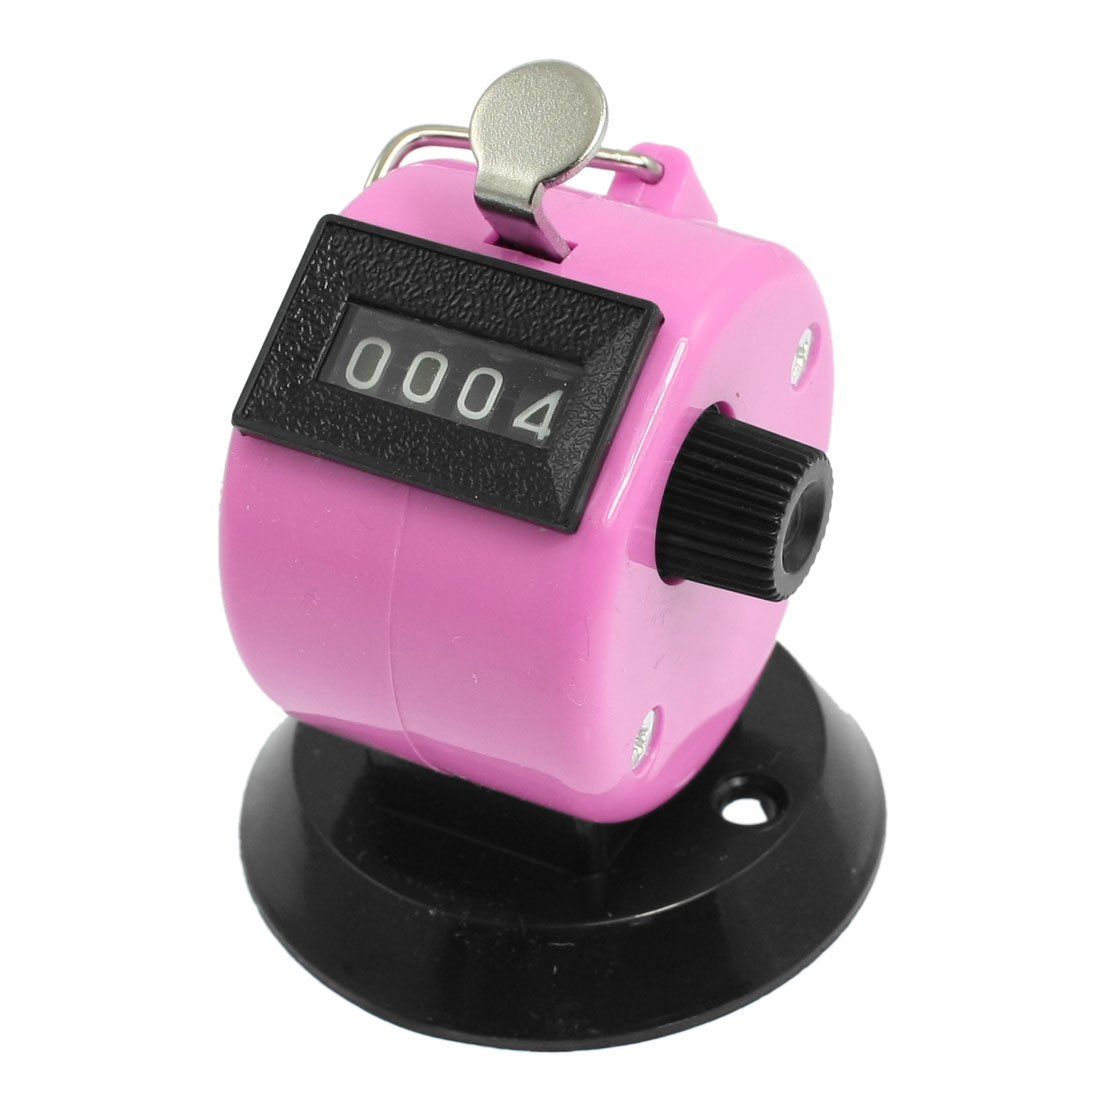 Golf Pitch 4 Digit Number Clicker Hand Held Tally Counter Black Pink